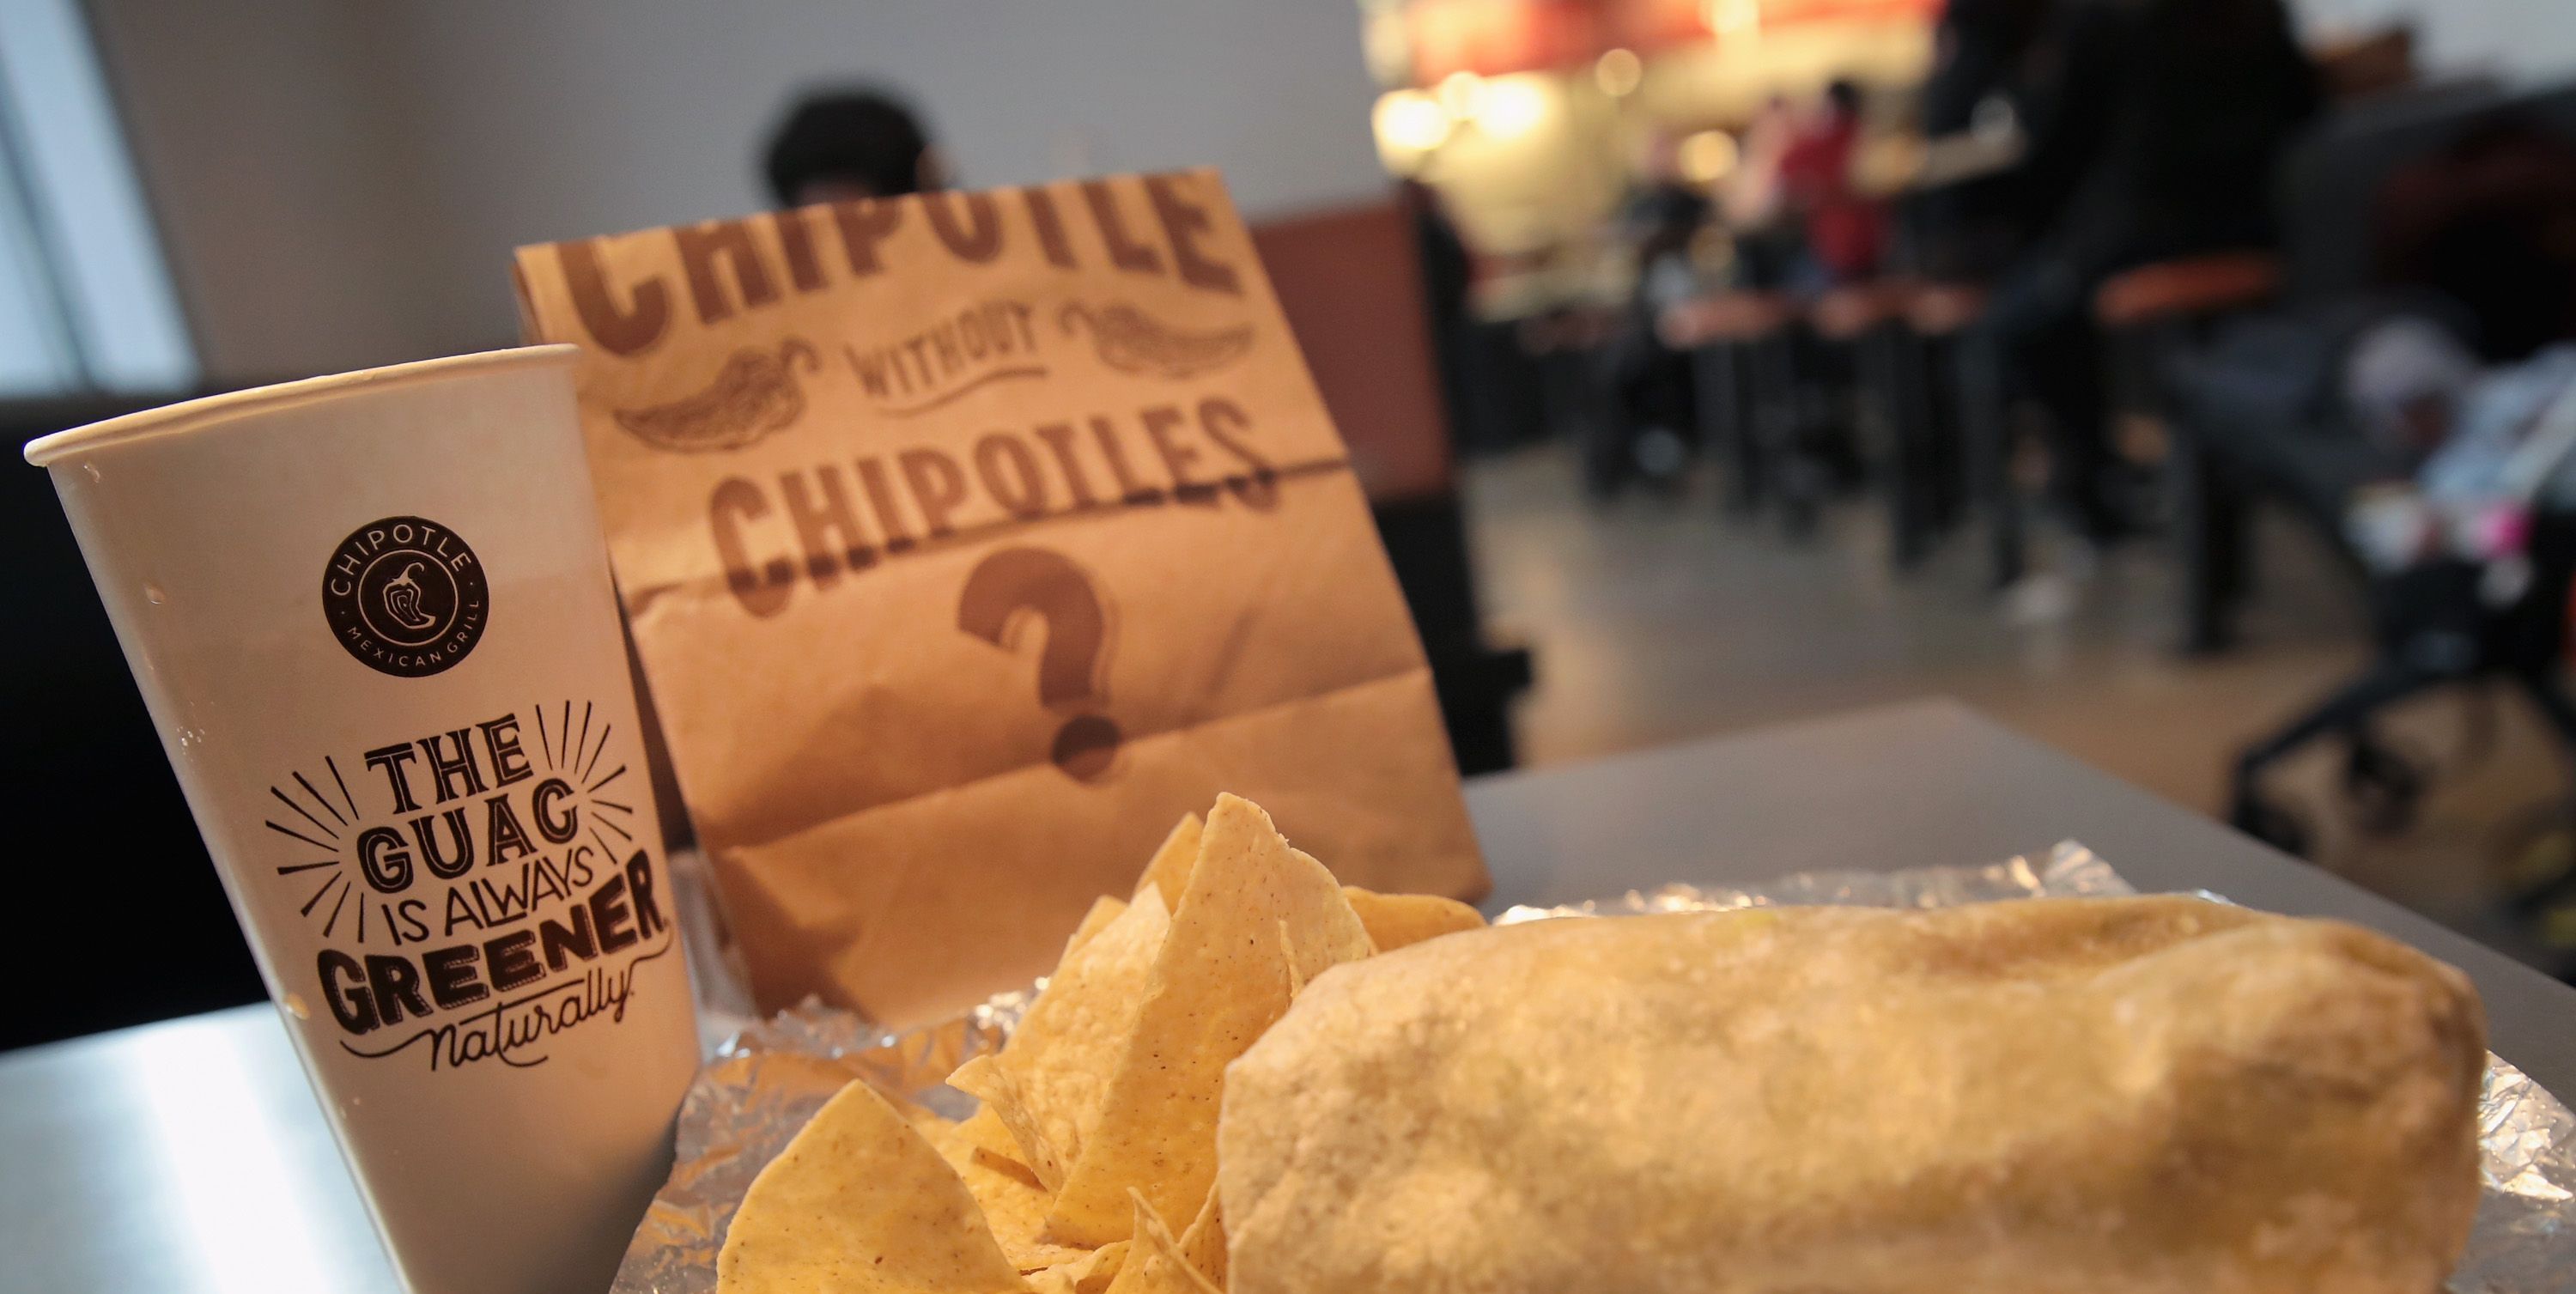 Chipotle Will Donate A Burrito To Healthcare Workers When You Use This Code